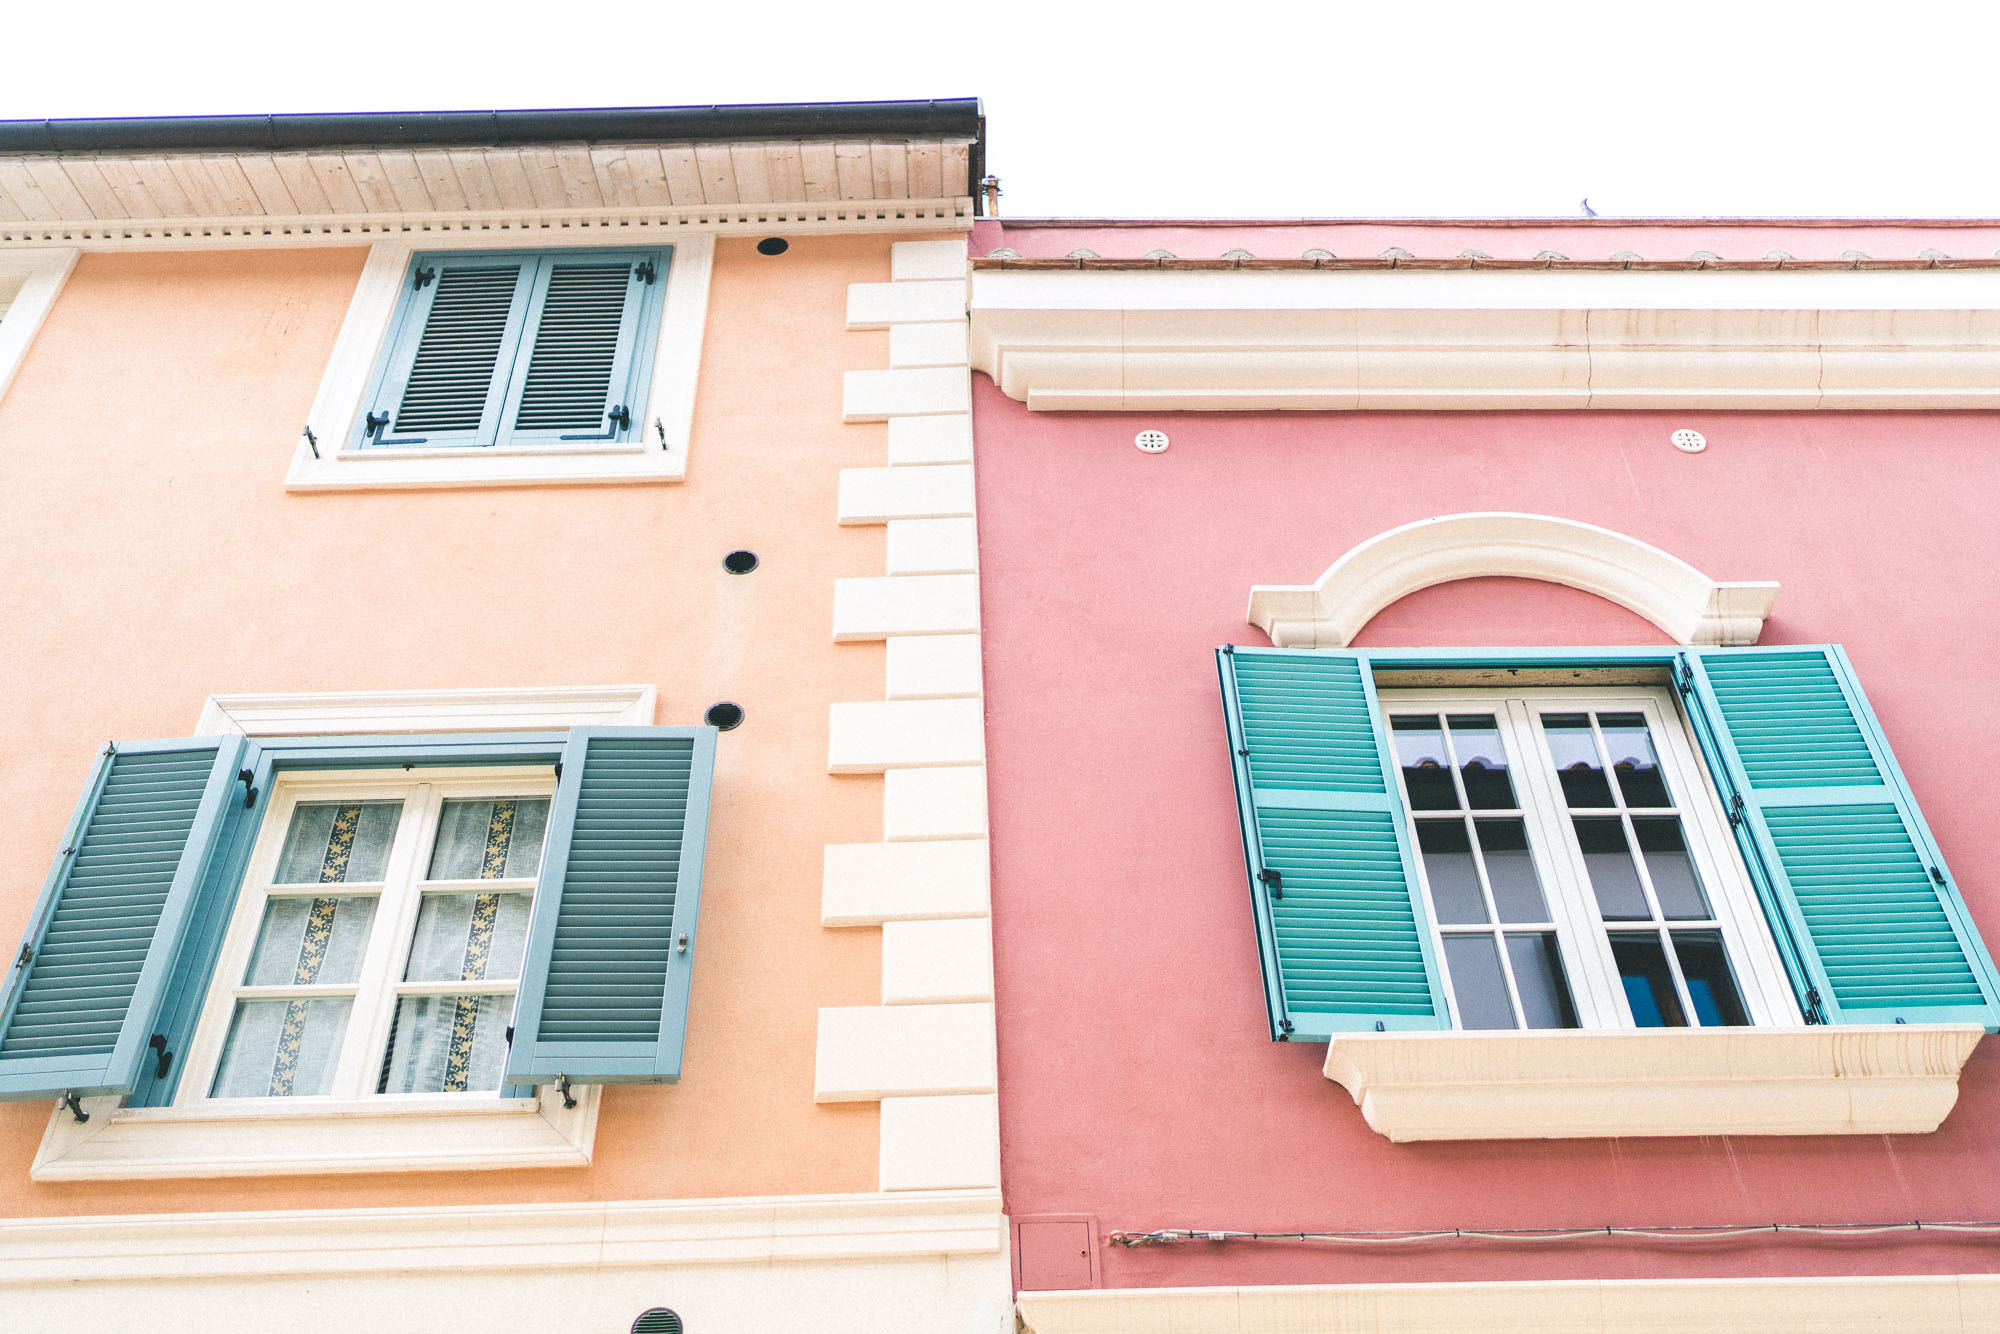 Pastel buildings in Porto Santo Stefano seaside town, southern Tuscany, Italy